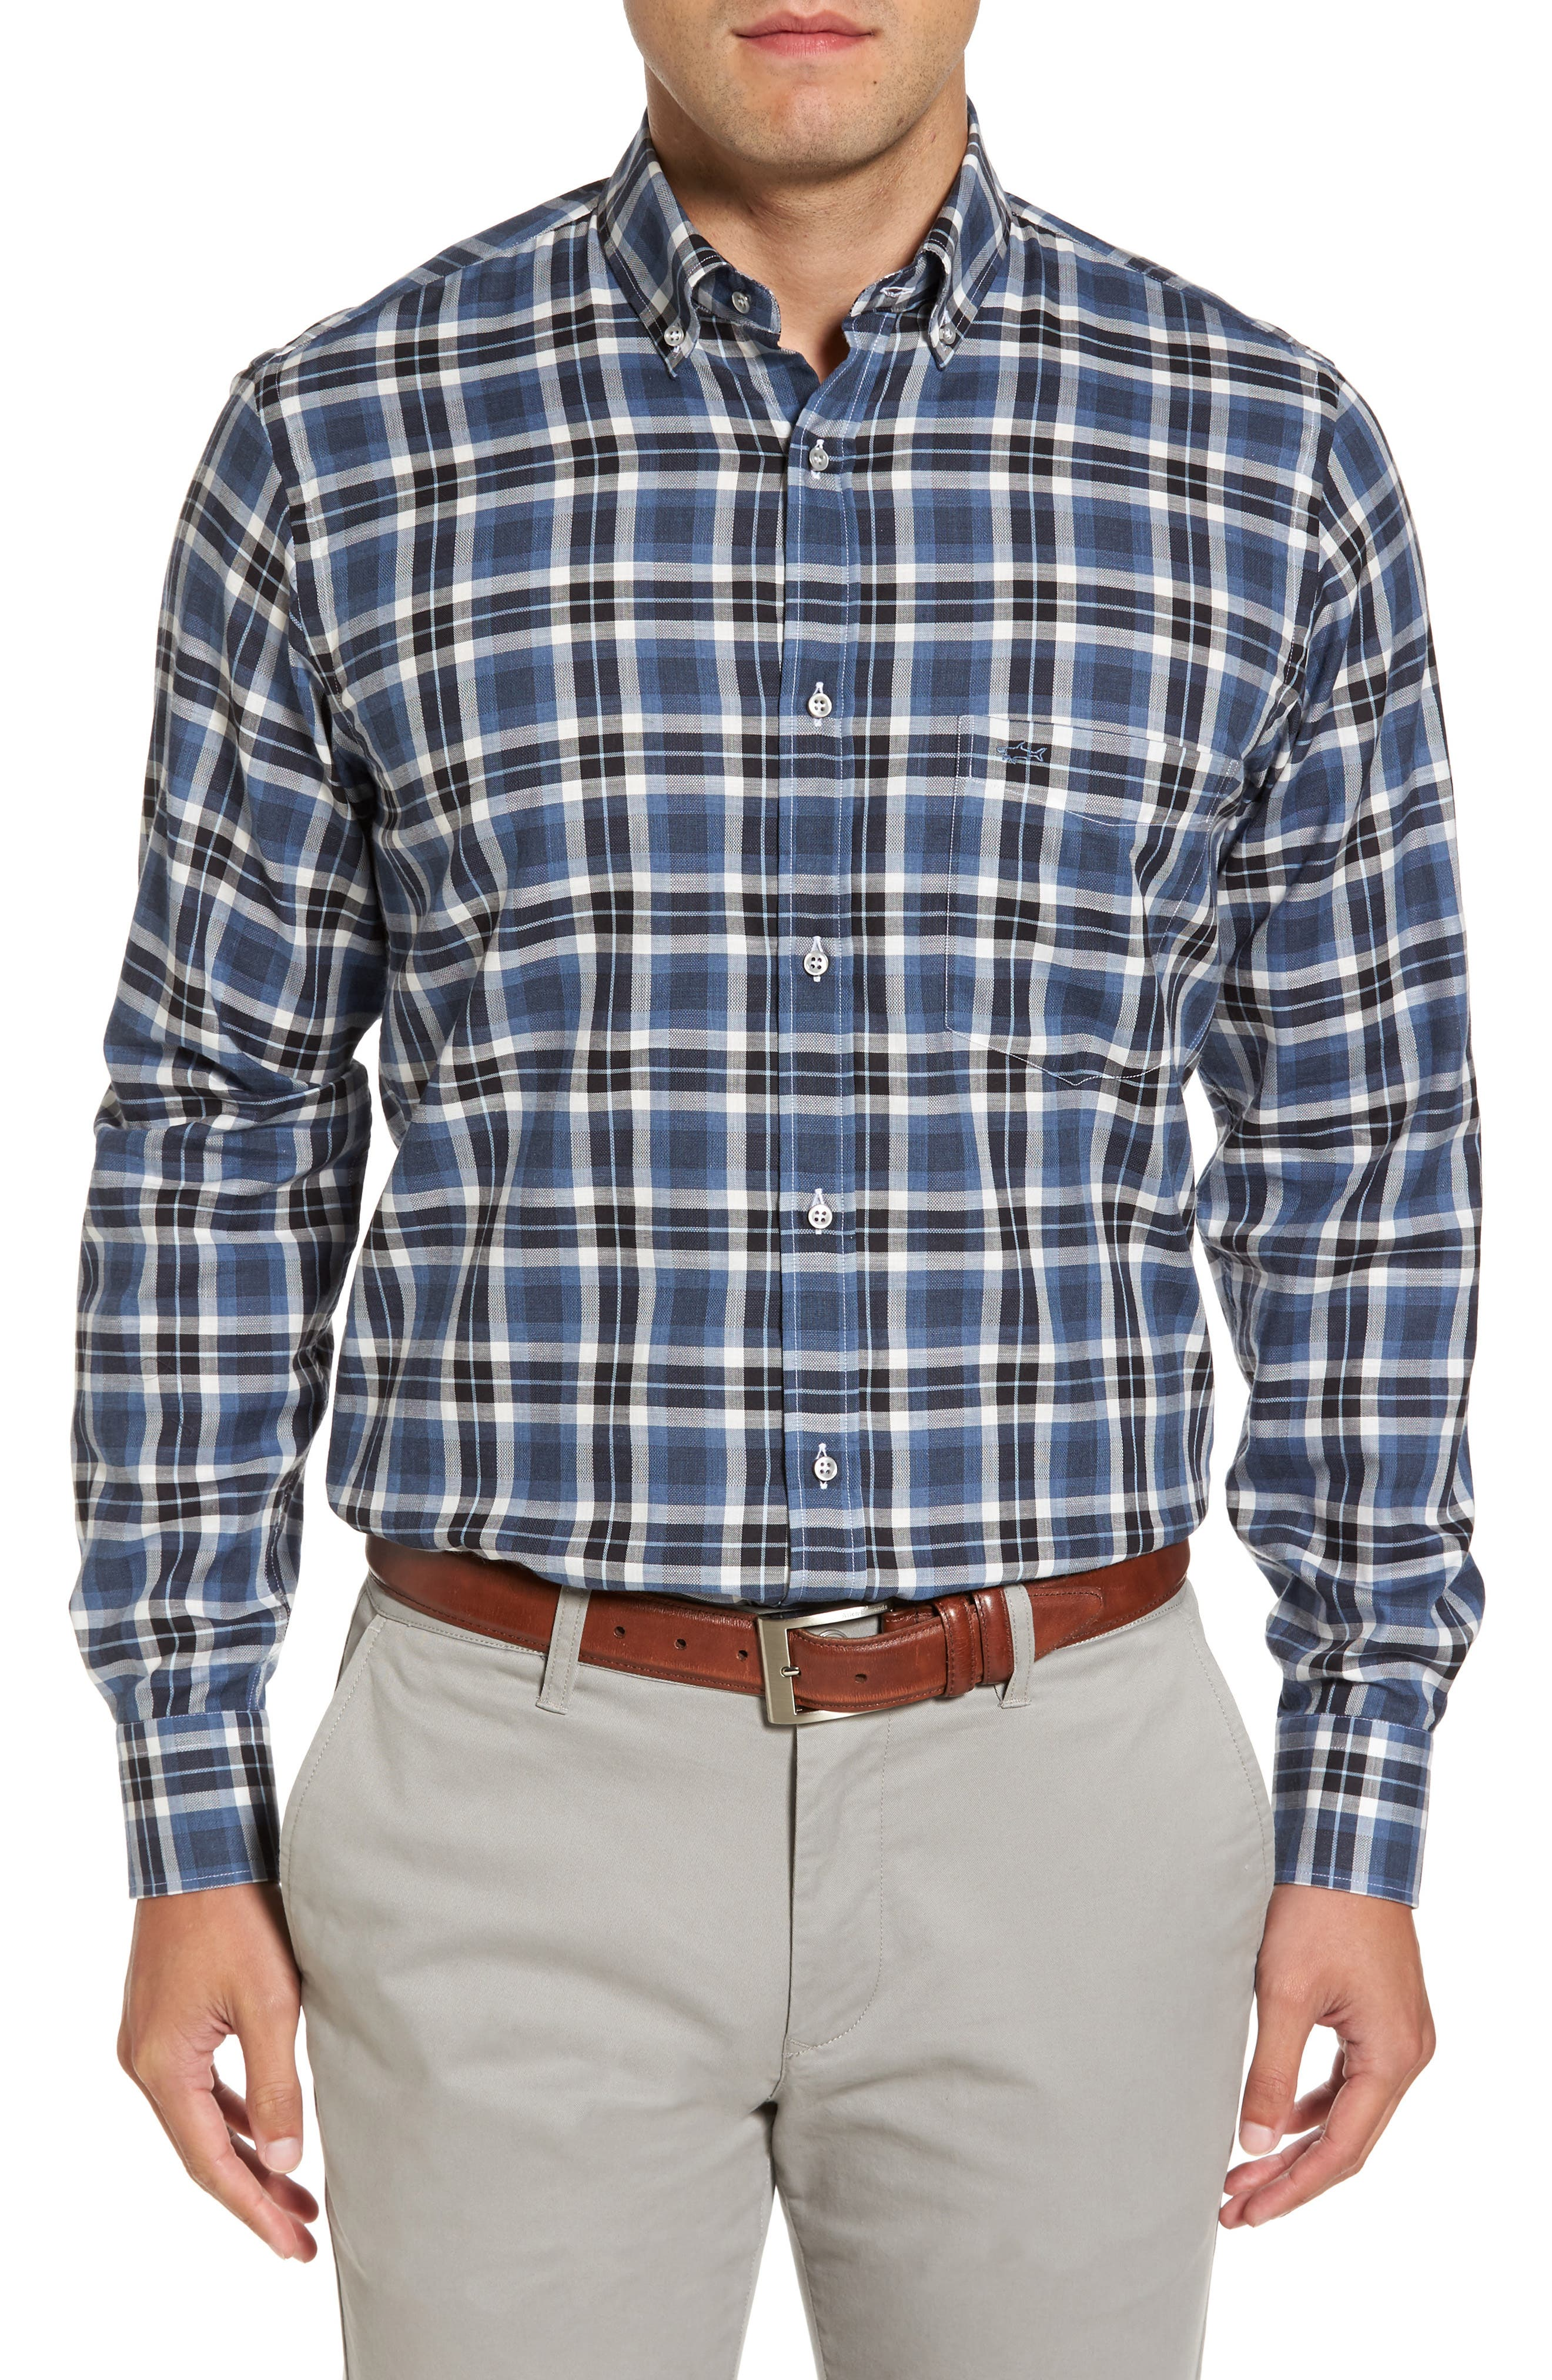 Paul&Shark Silver Collection Plaid Sport Shirt,                             Main thumbnail 1, color,                             Blue / Grey